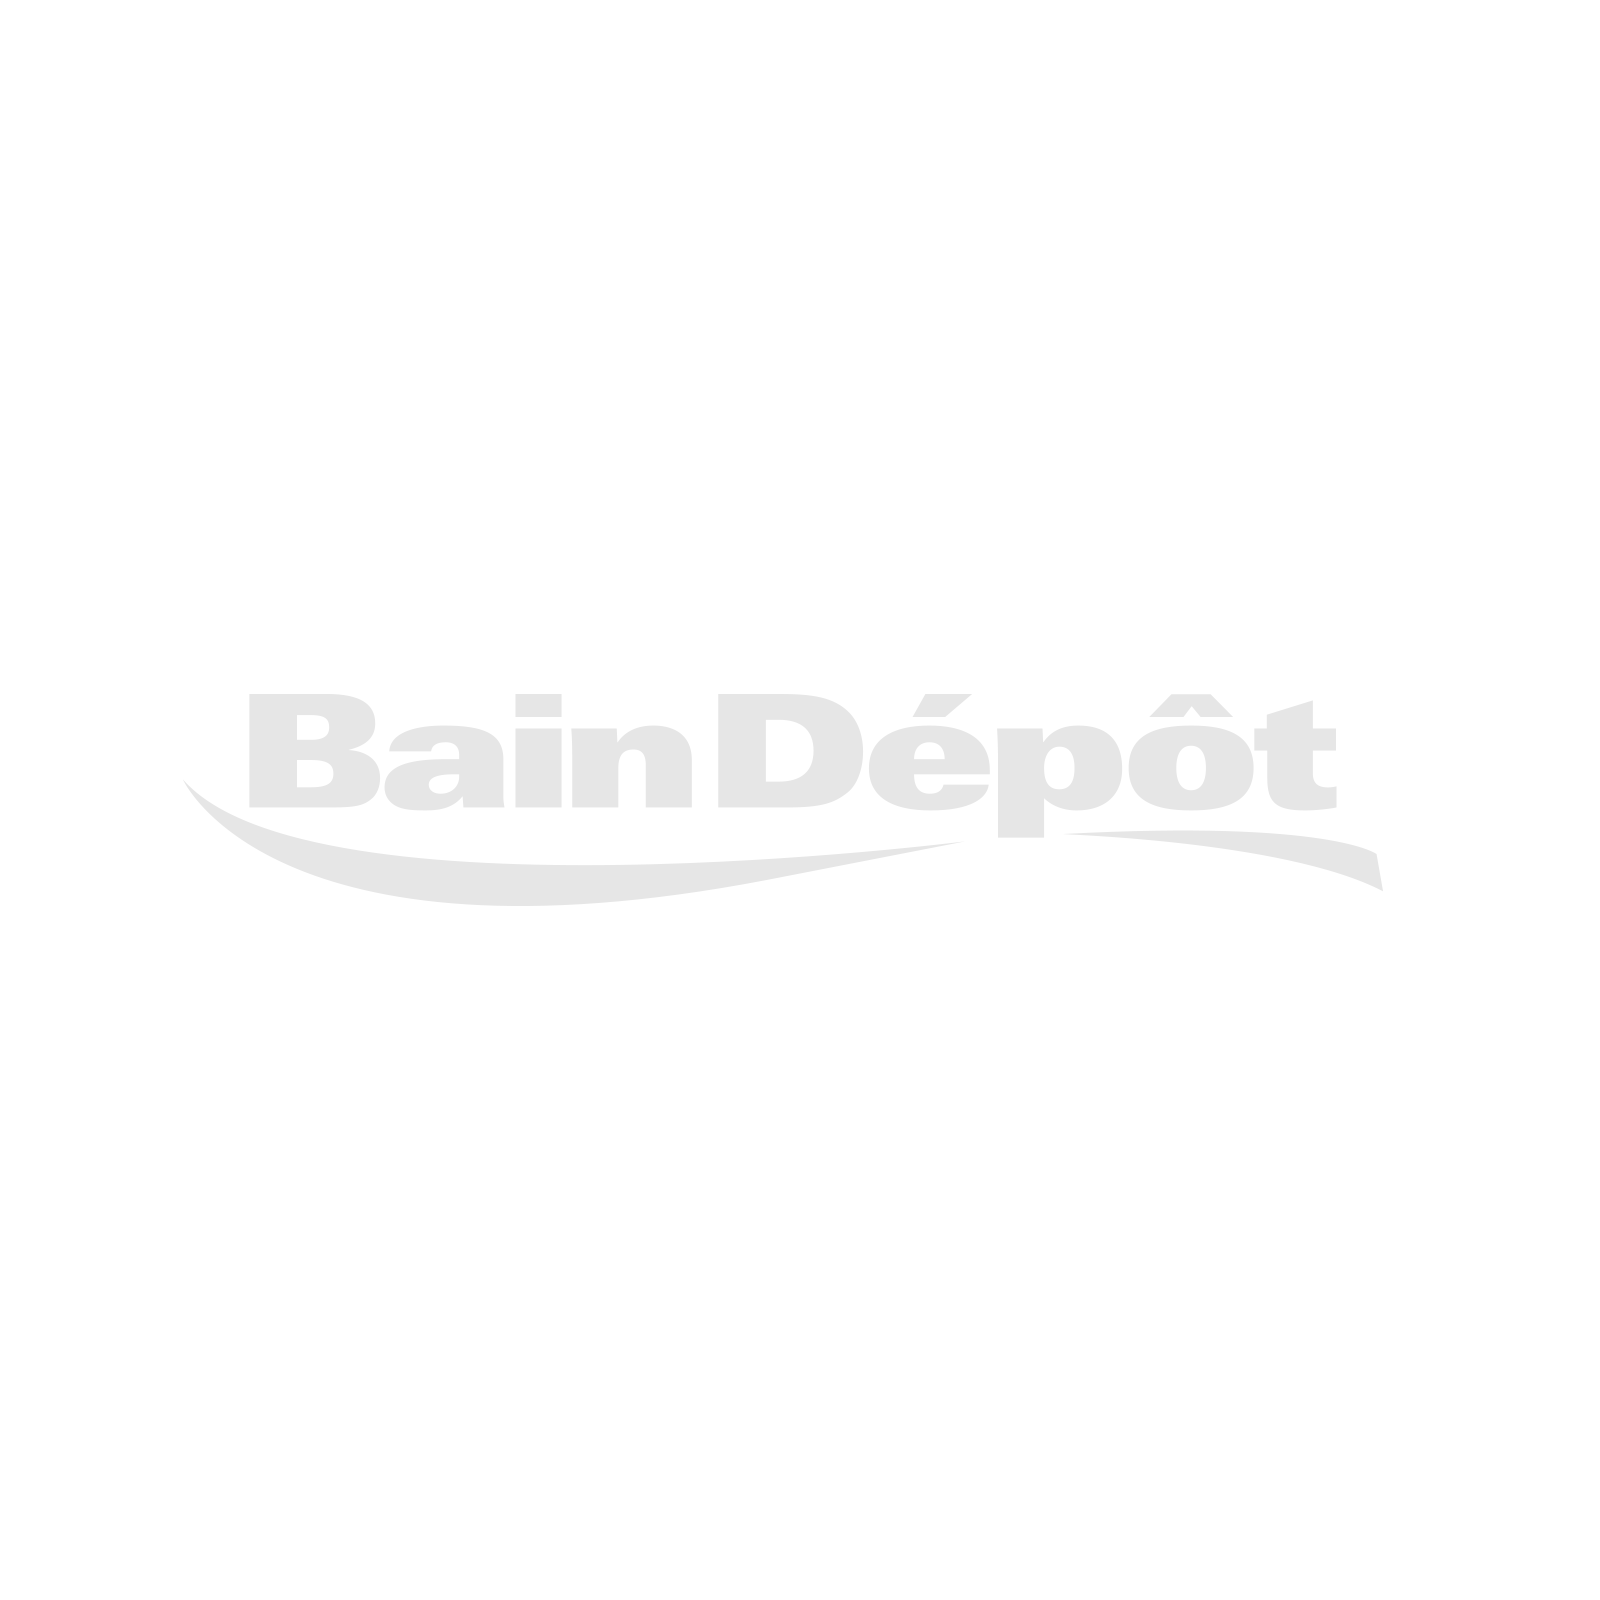 White and chrome single-hole bathroom sink faucet